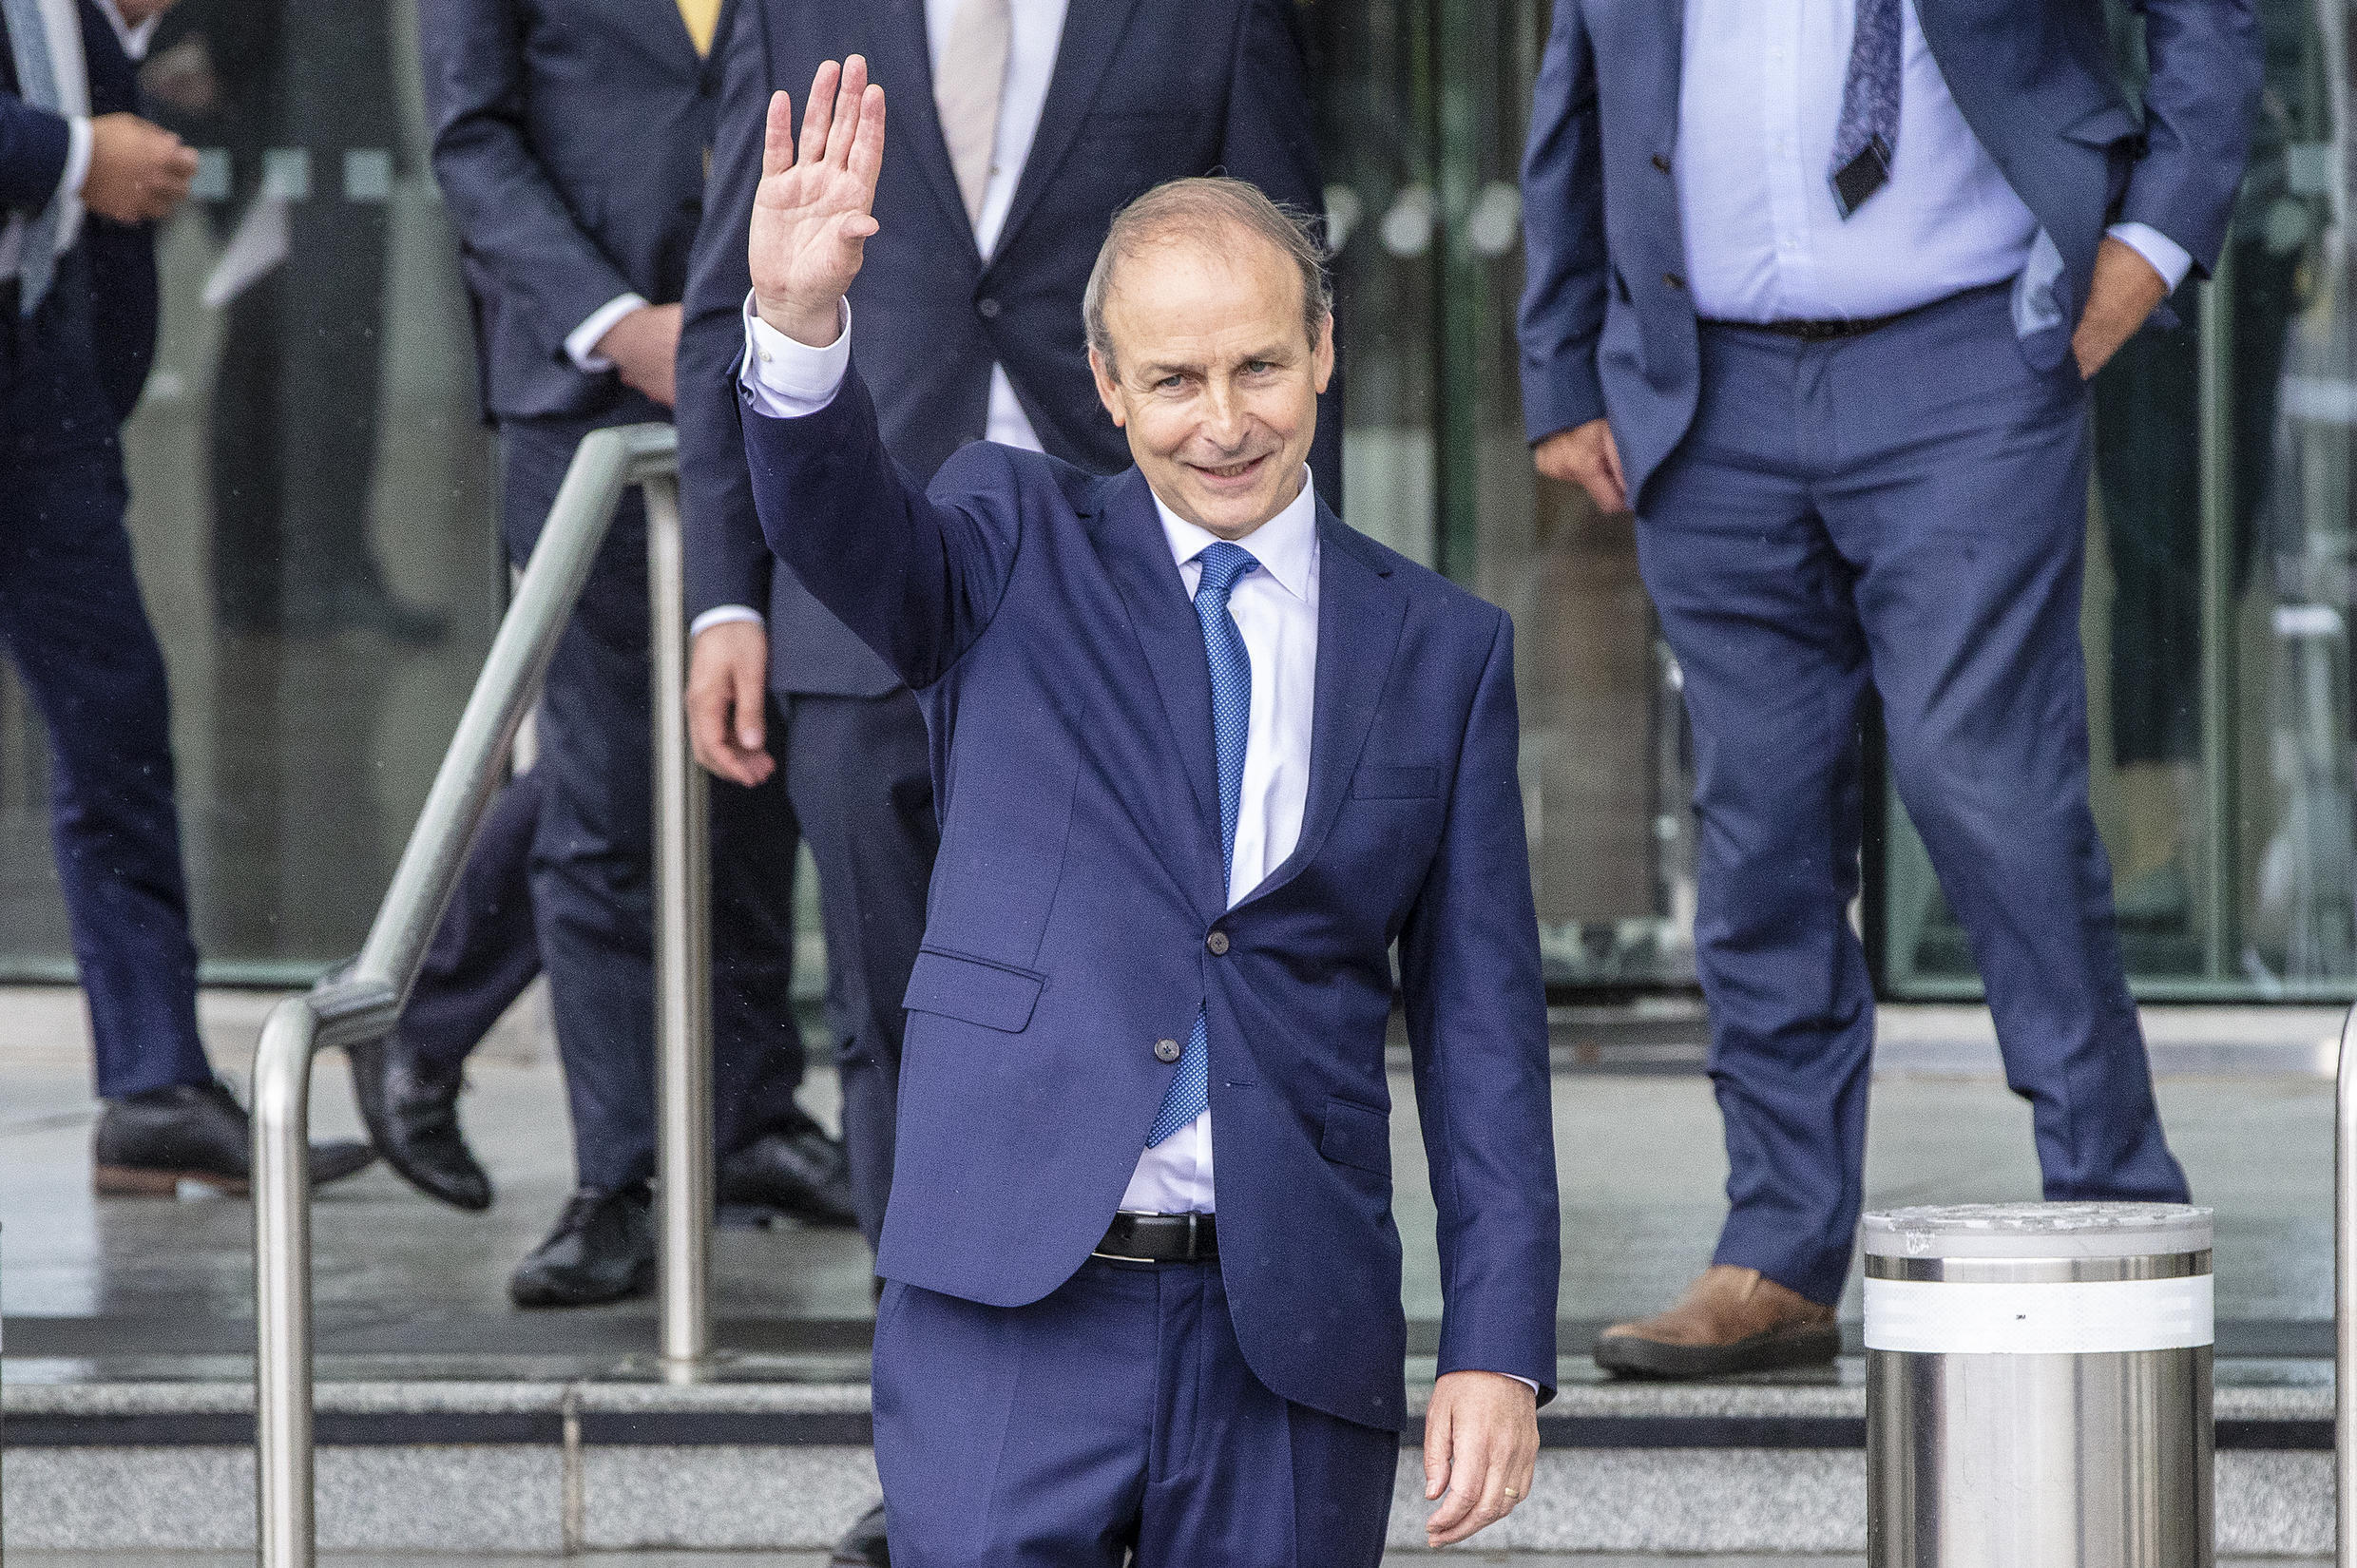 Fianna Fail leader Micheal Martin waves after being elected Ireland's new prime minister